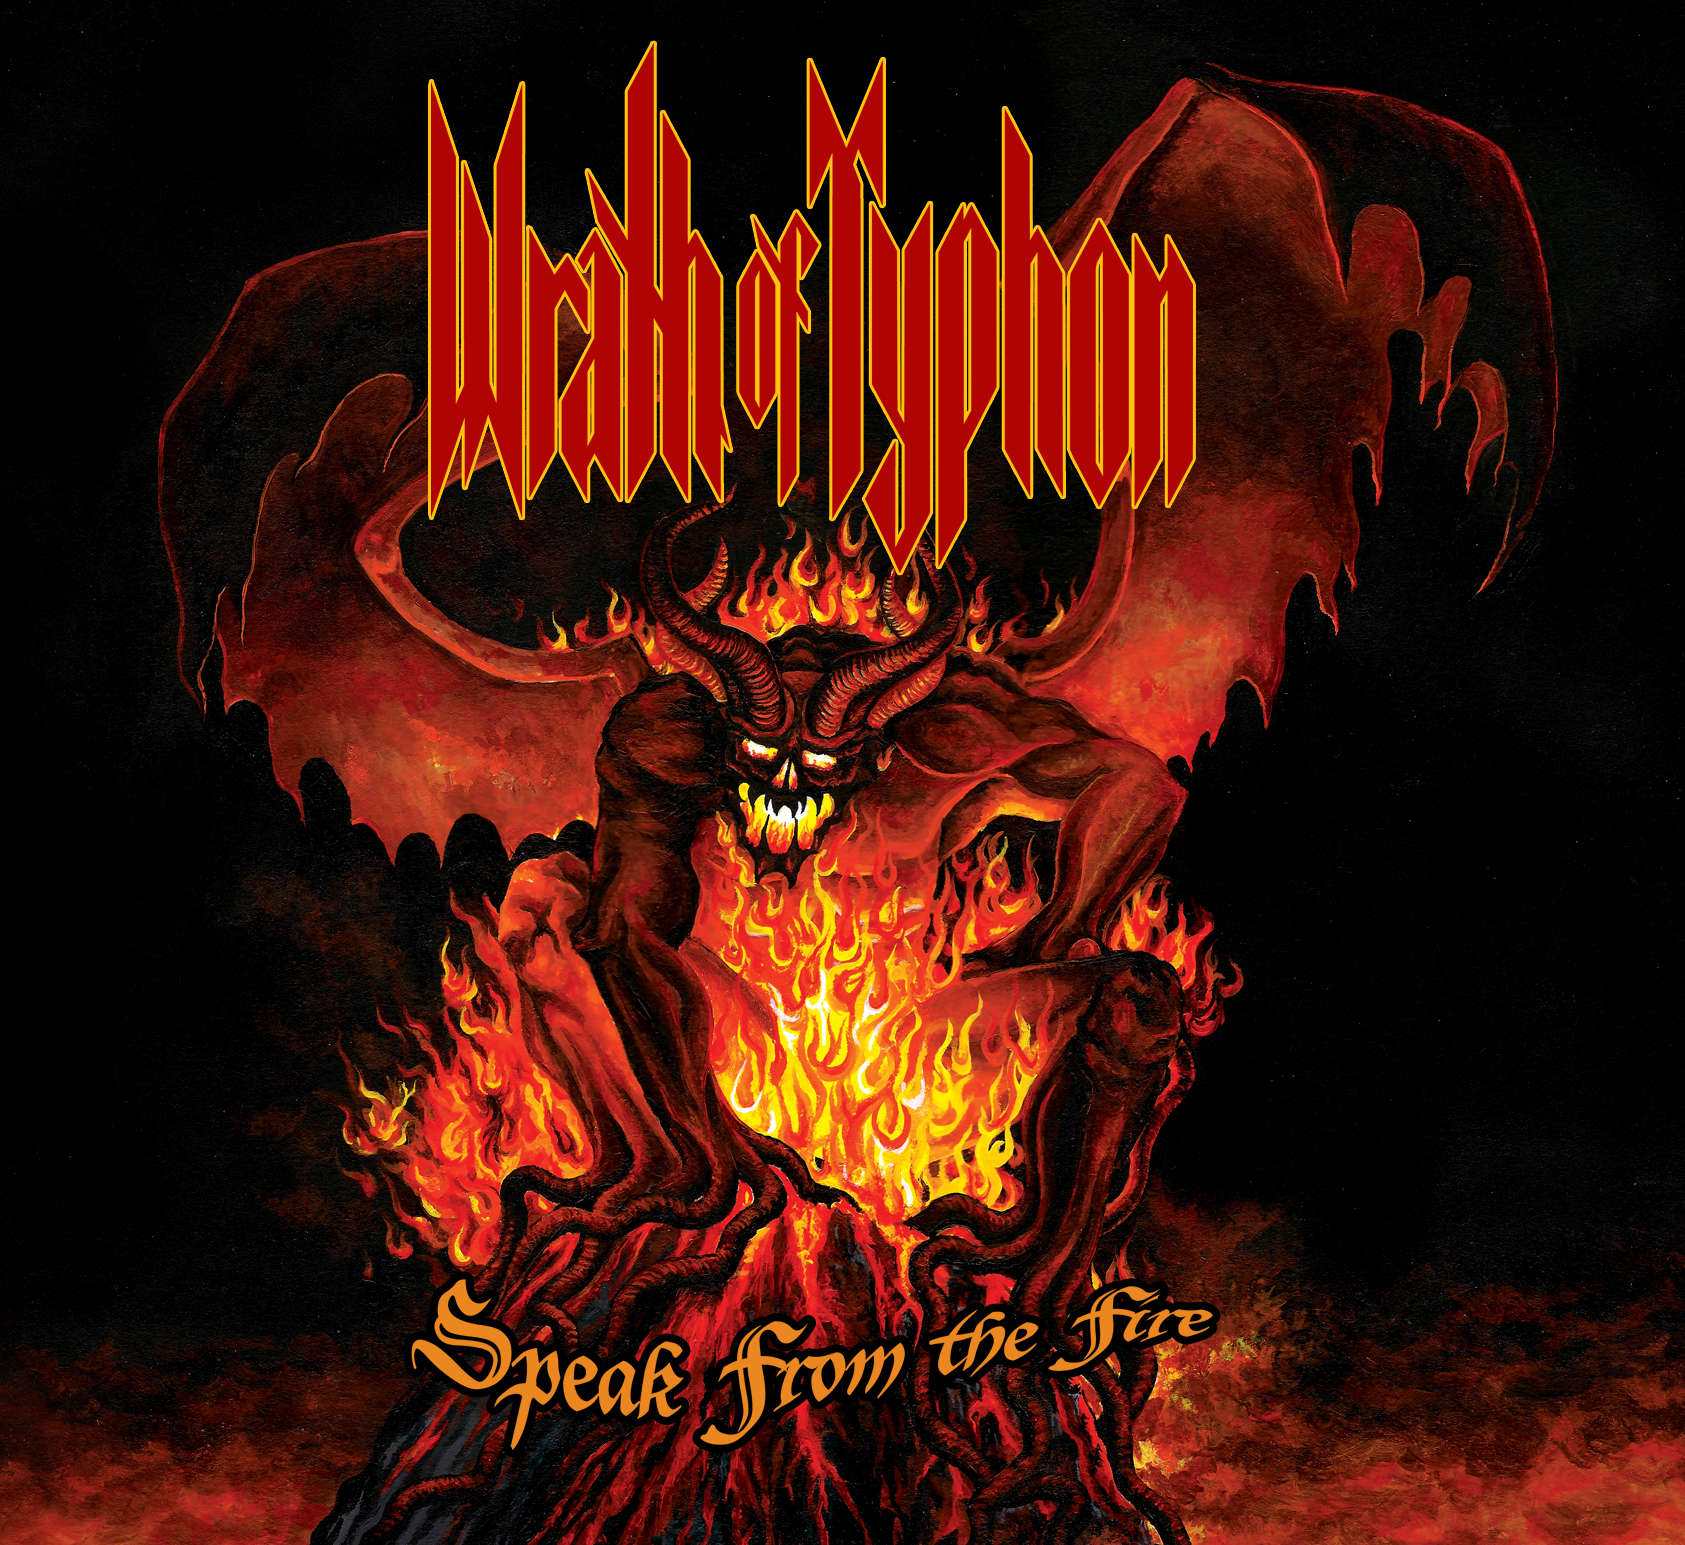 Wrath of Typhon - Speak from the Fire - Album Art - Front Cover